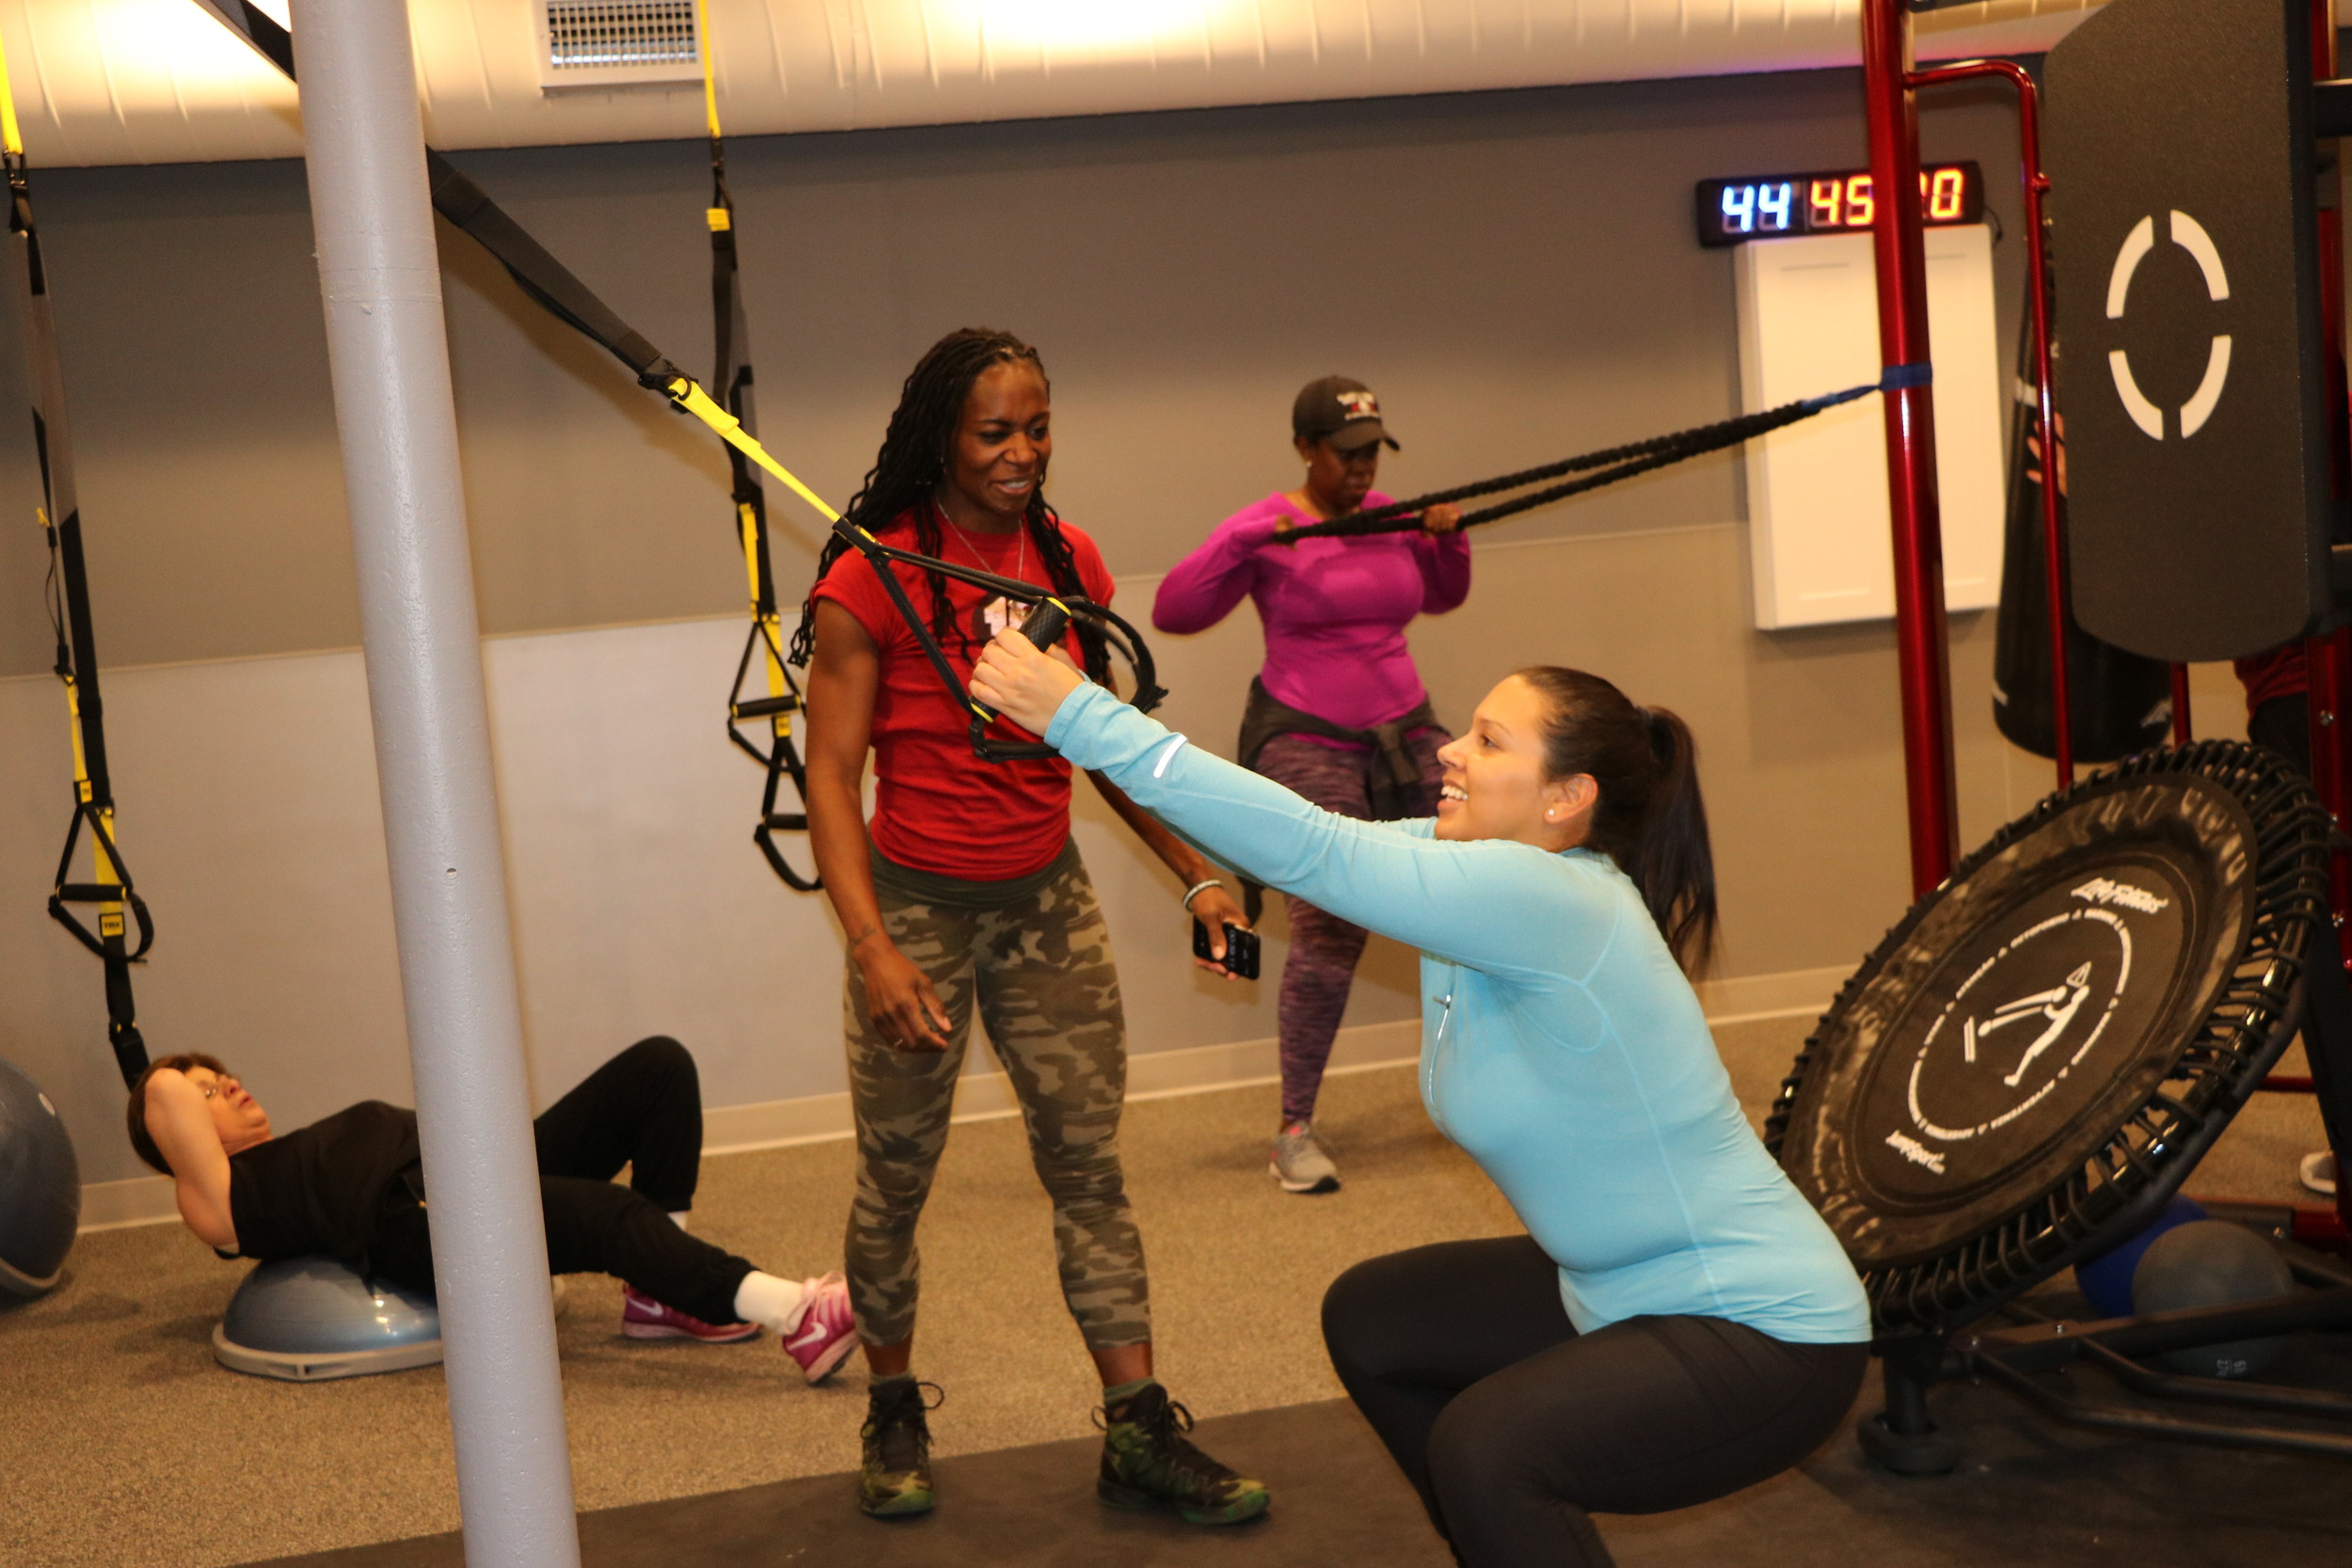 A Fitness 19 trainer helped a patron get in shape during an intensive interval workout.